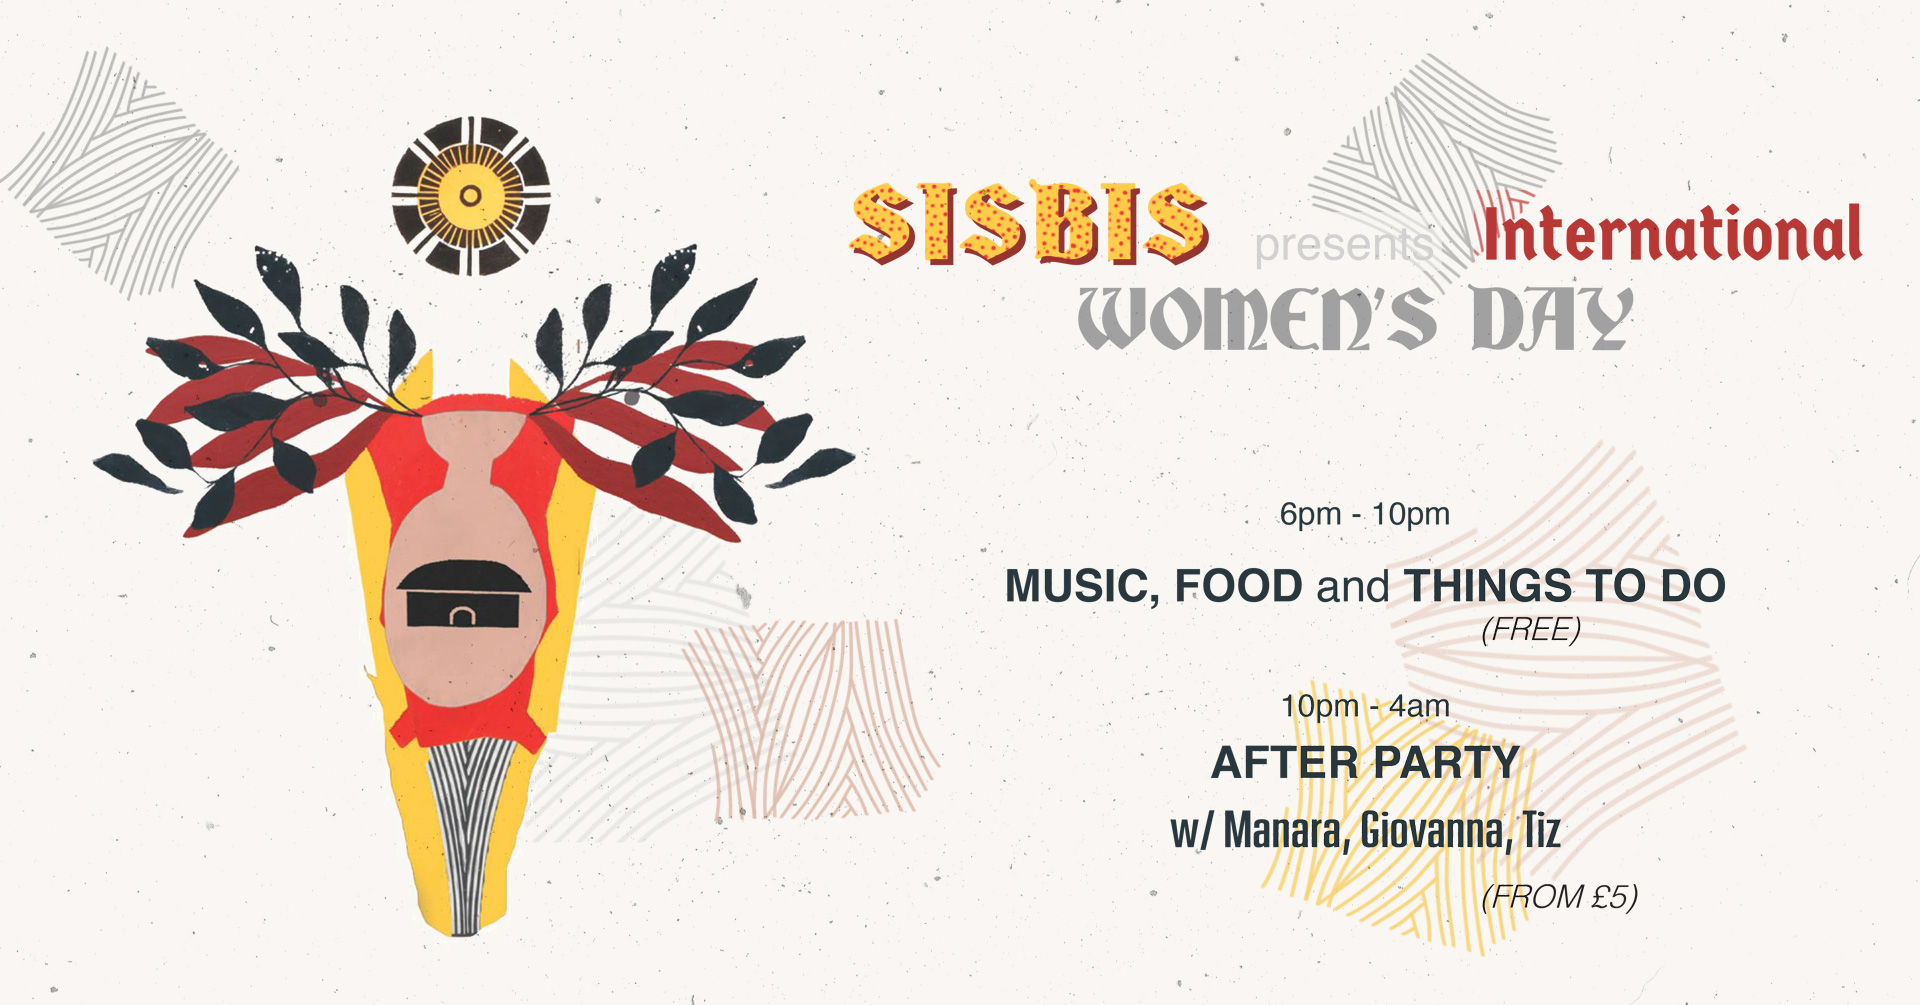 24 Kitchen Street: SisBis Presents International Womens Day